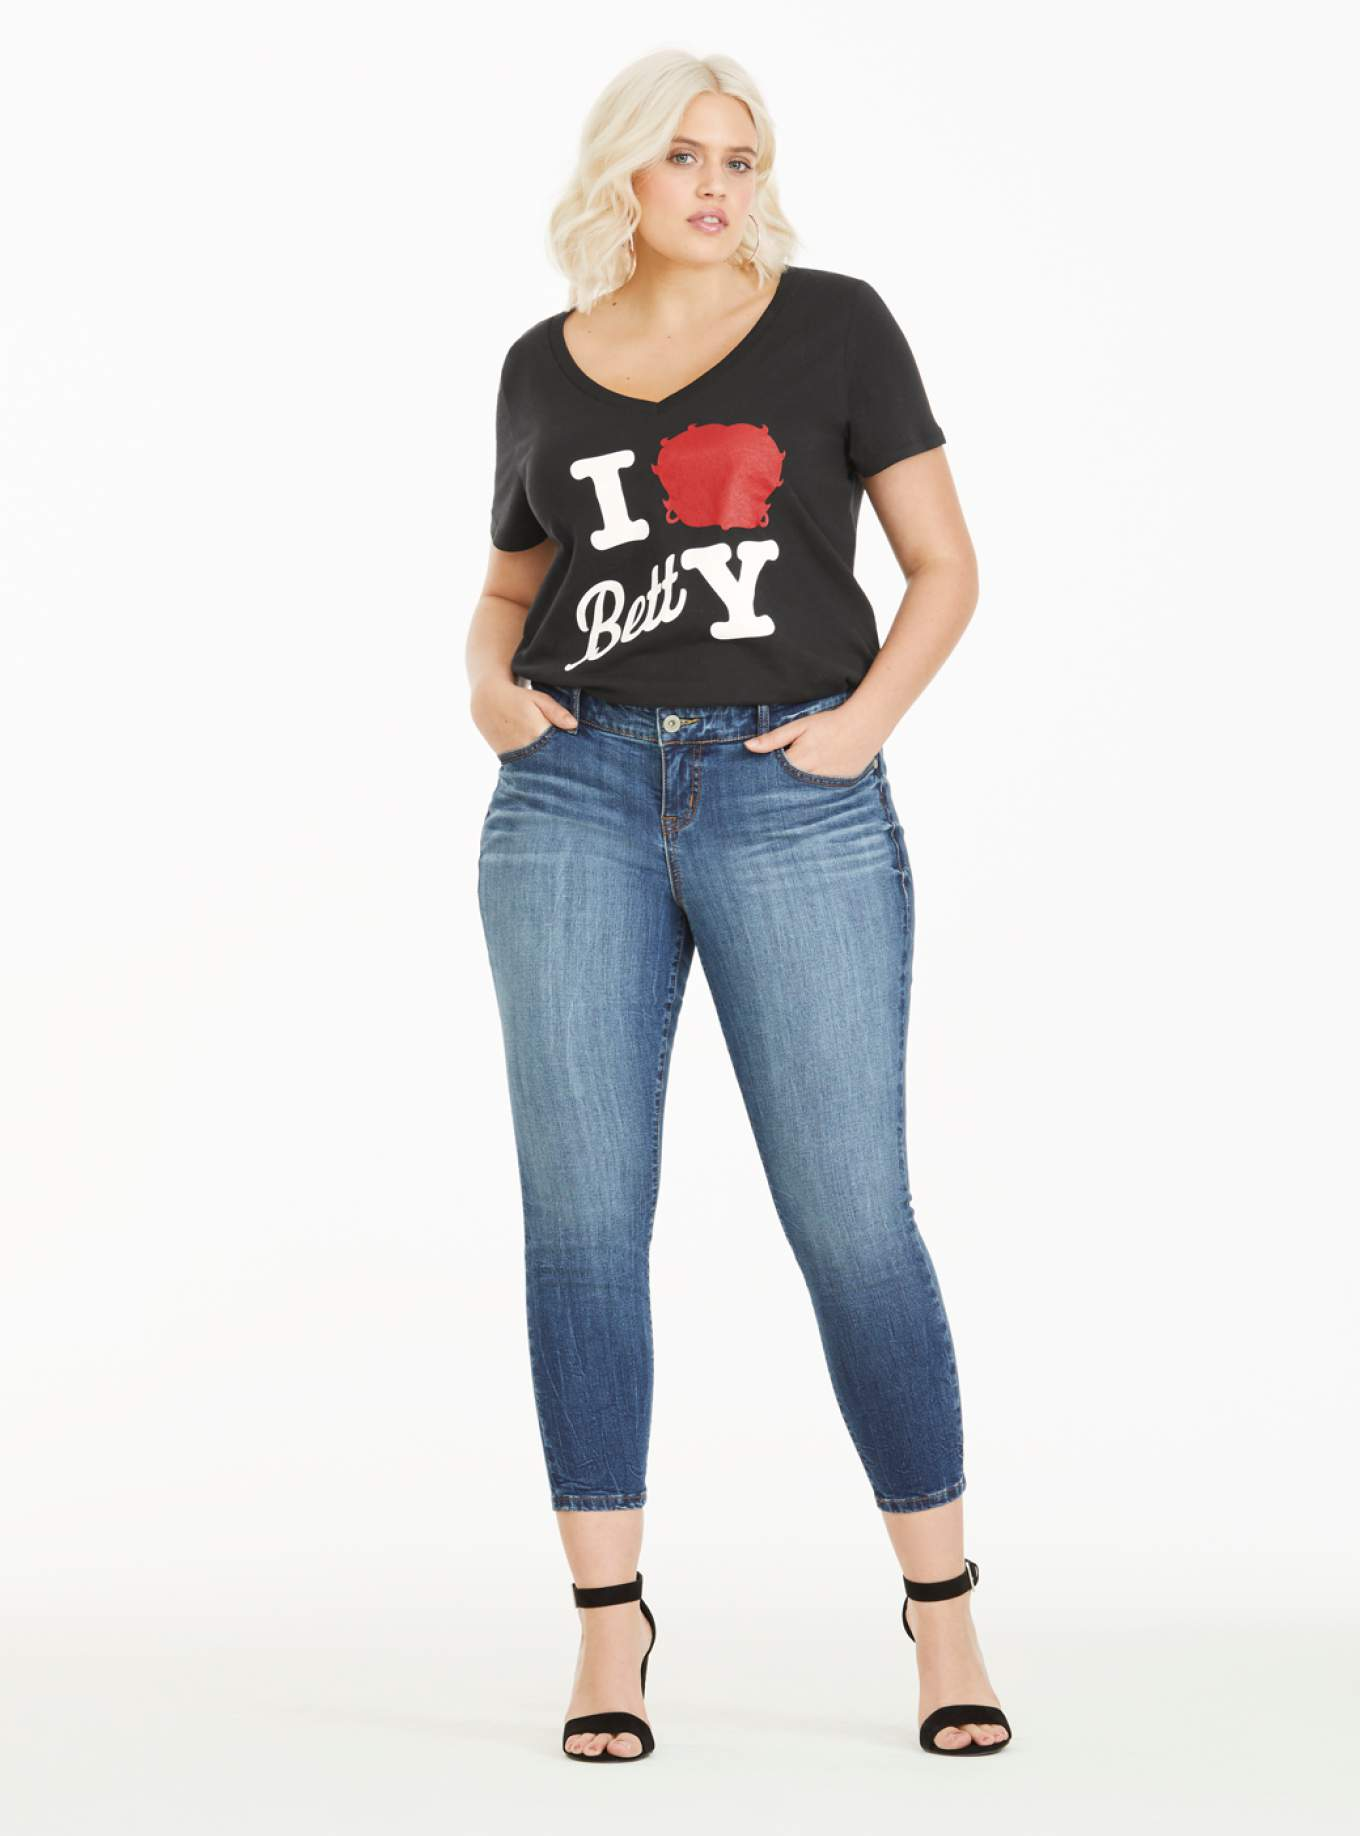 Torrid x Betty Boop X Project Runway Collection